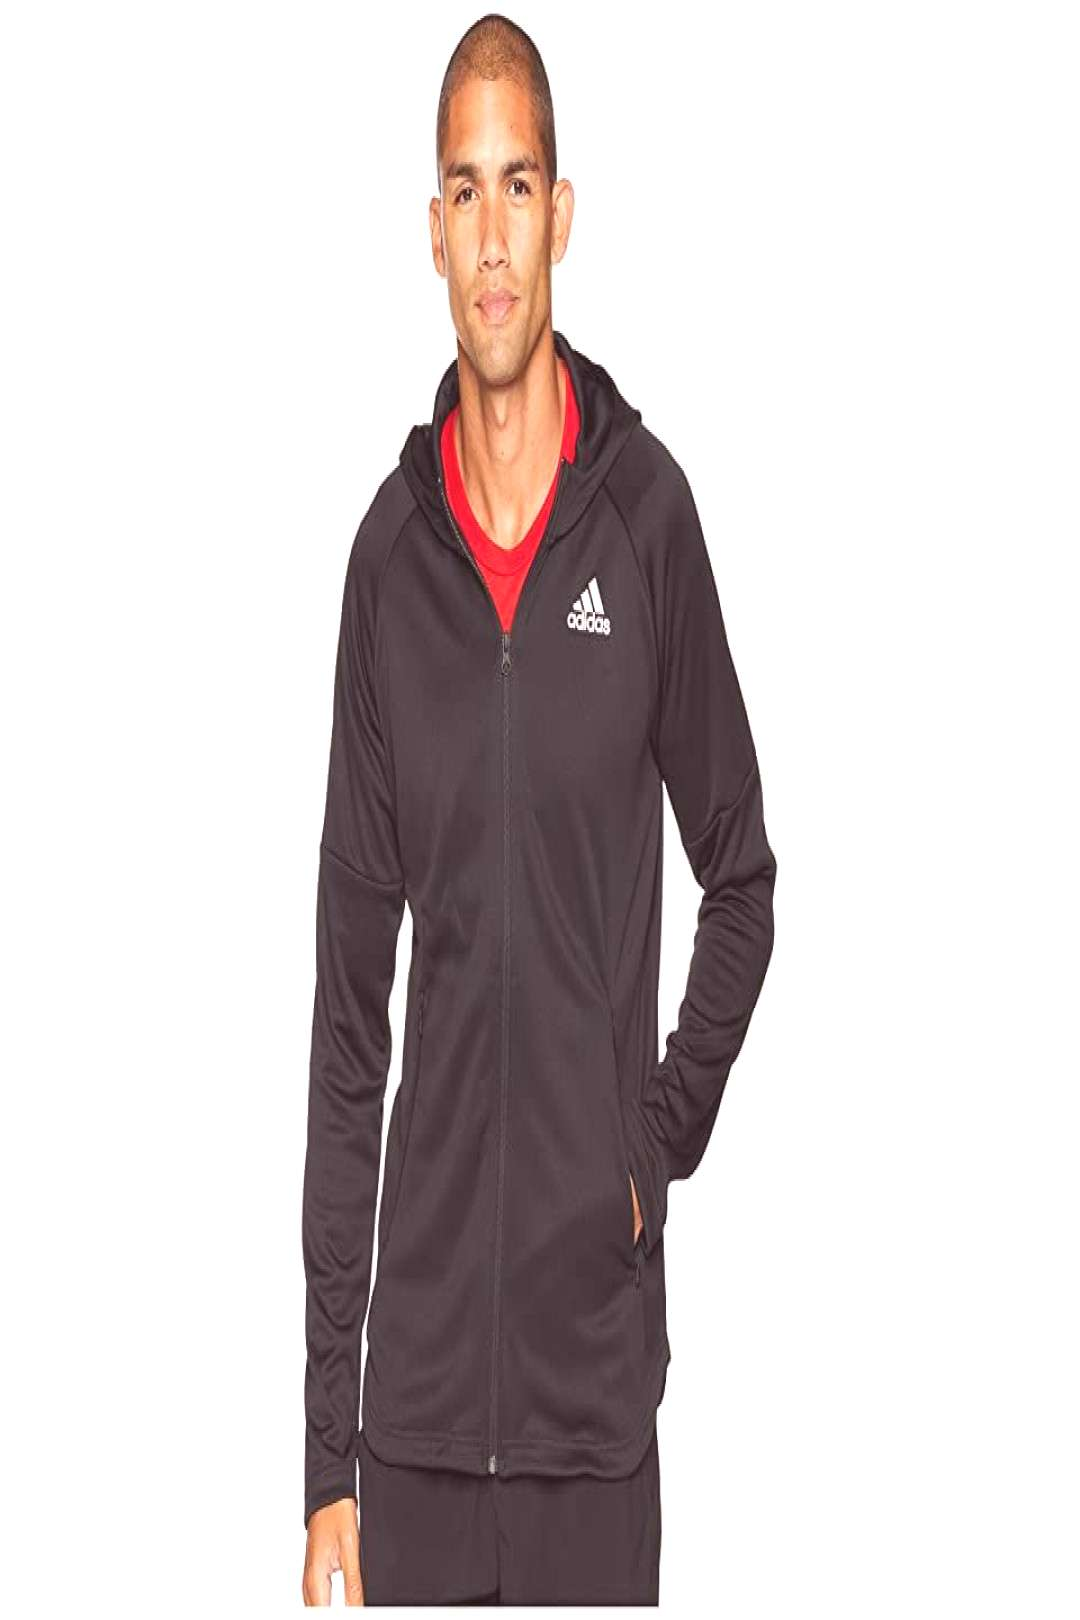 adidas Team Issue Lite Hoodie (Black/Black) Men's Sweatshirt. Be ready to train at moment's notice